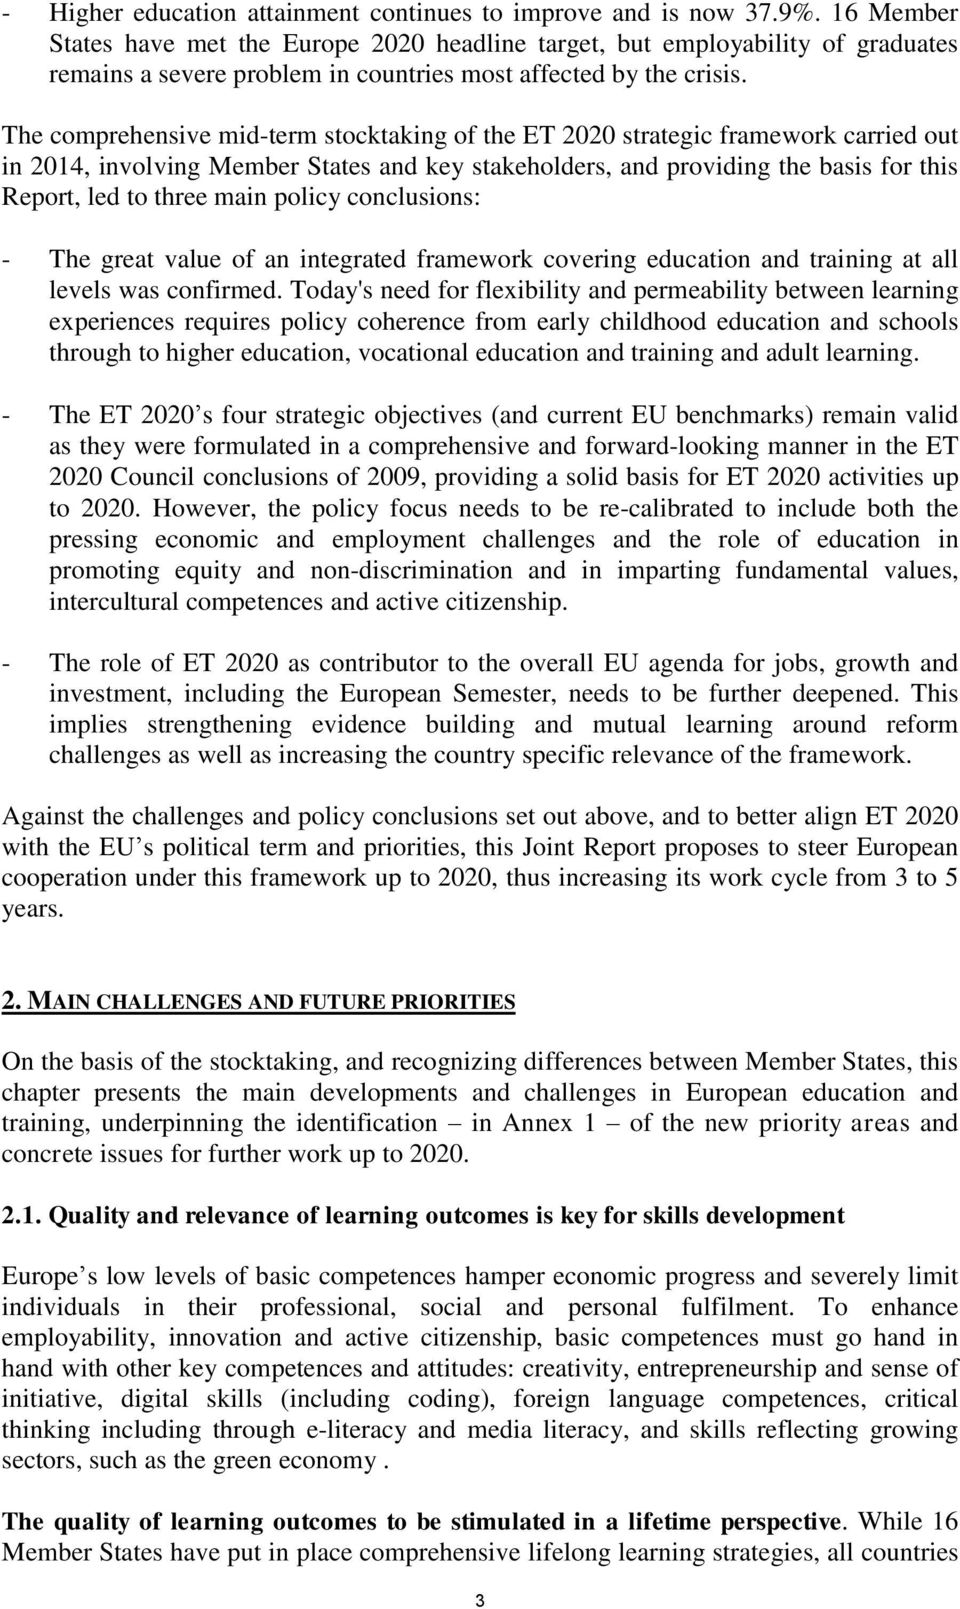 The comprehensive mid-term stocktaking of the ET 2020 strategic framework carried out in 2014, involving Member States and key stakeholders, and providing the basis for this Report, led to three main